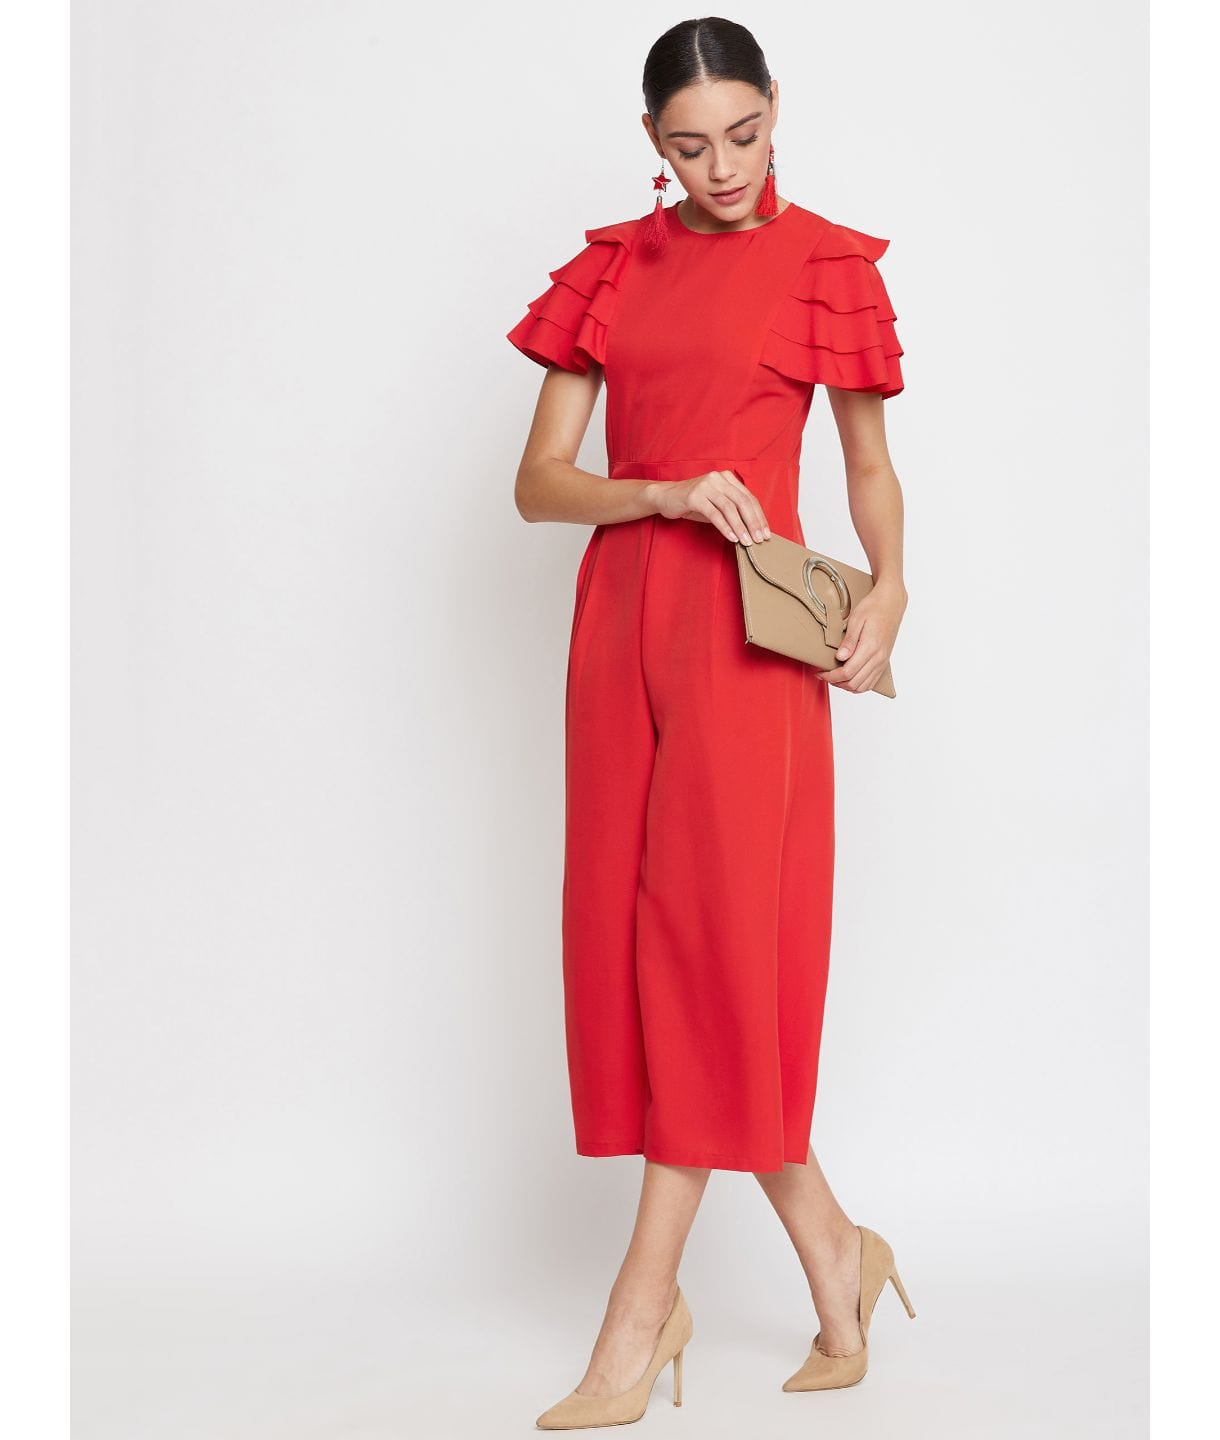 Uptownie Red Solid Relaxed Fit Culotte Jumpsuit With Ruffled Sleeves